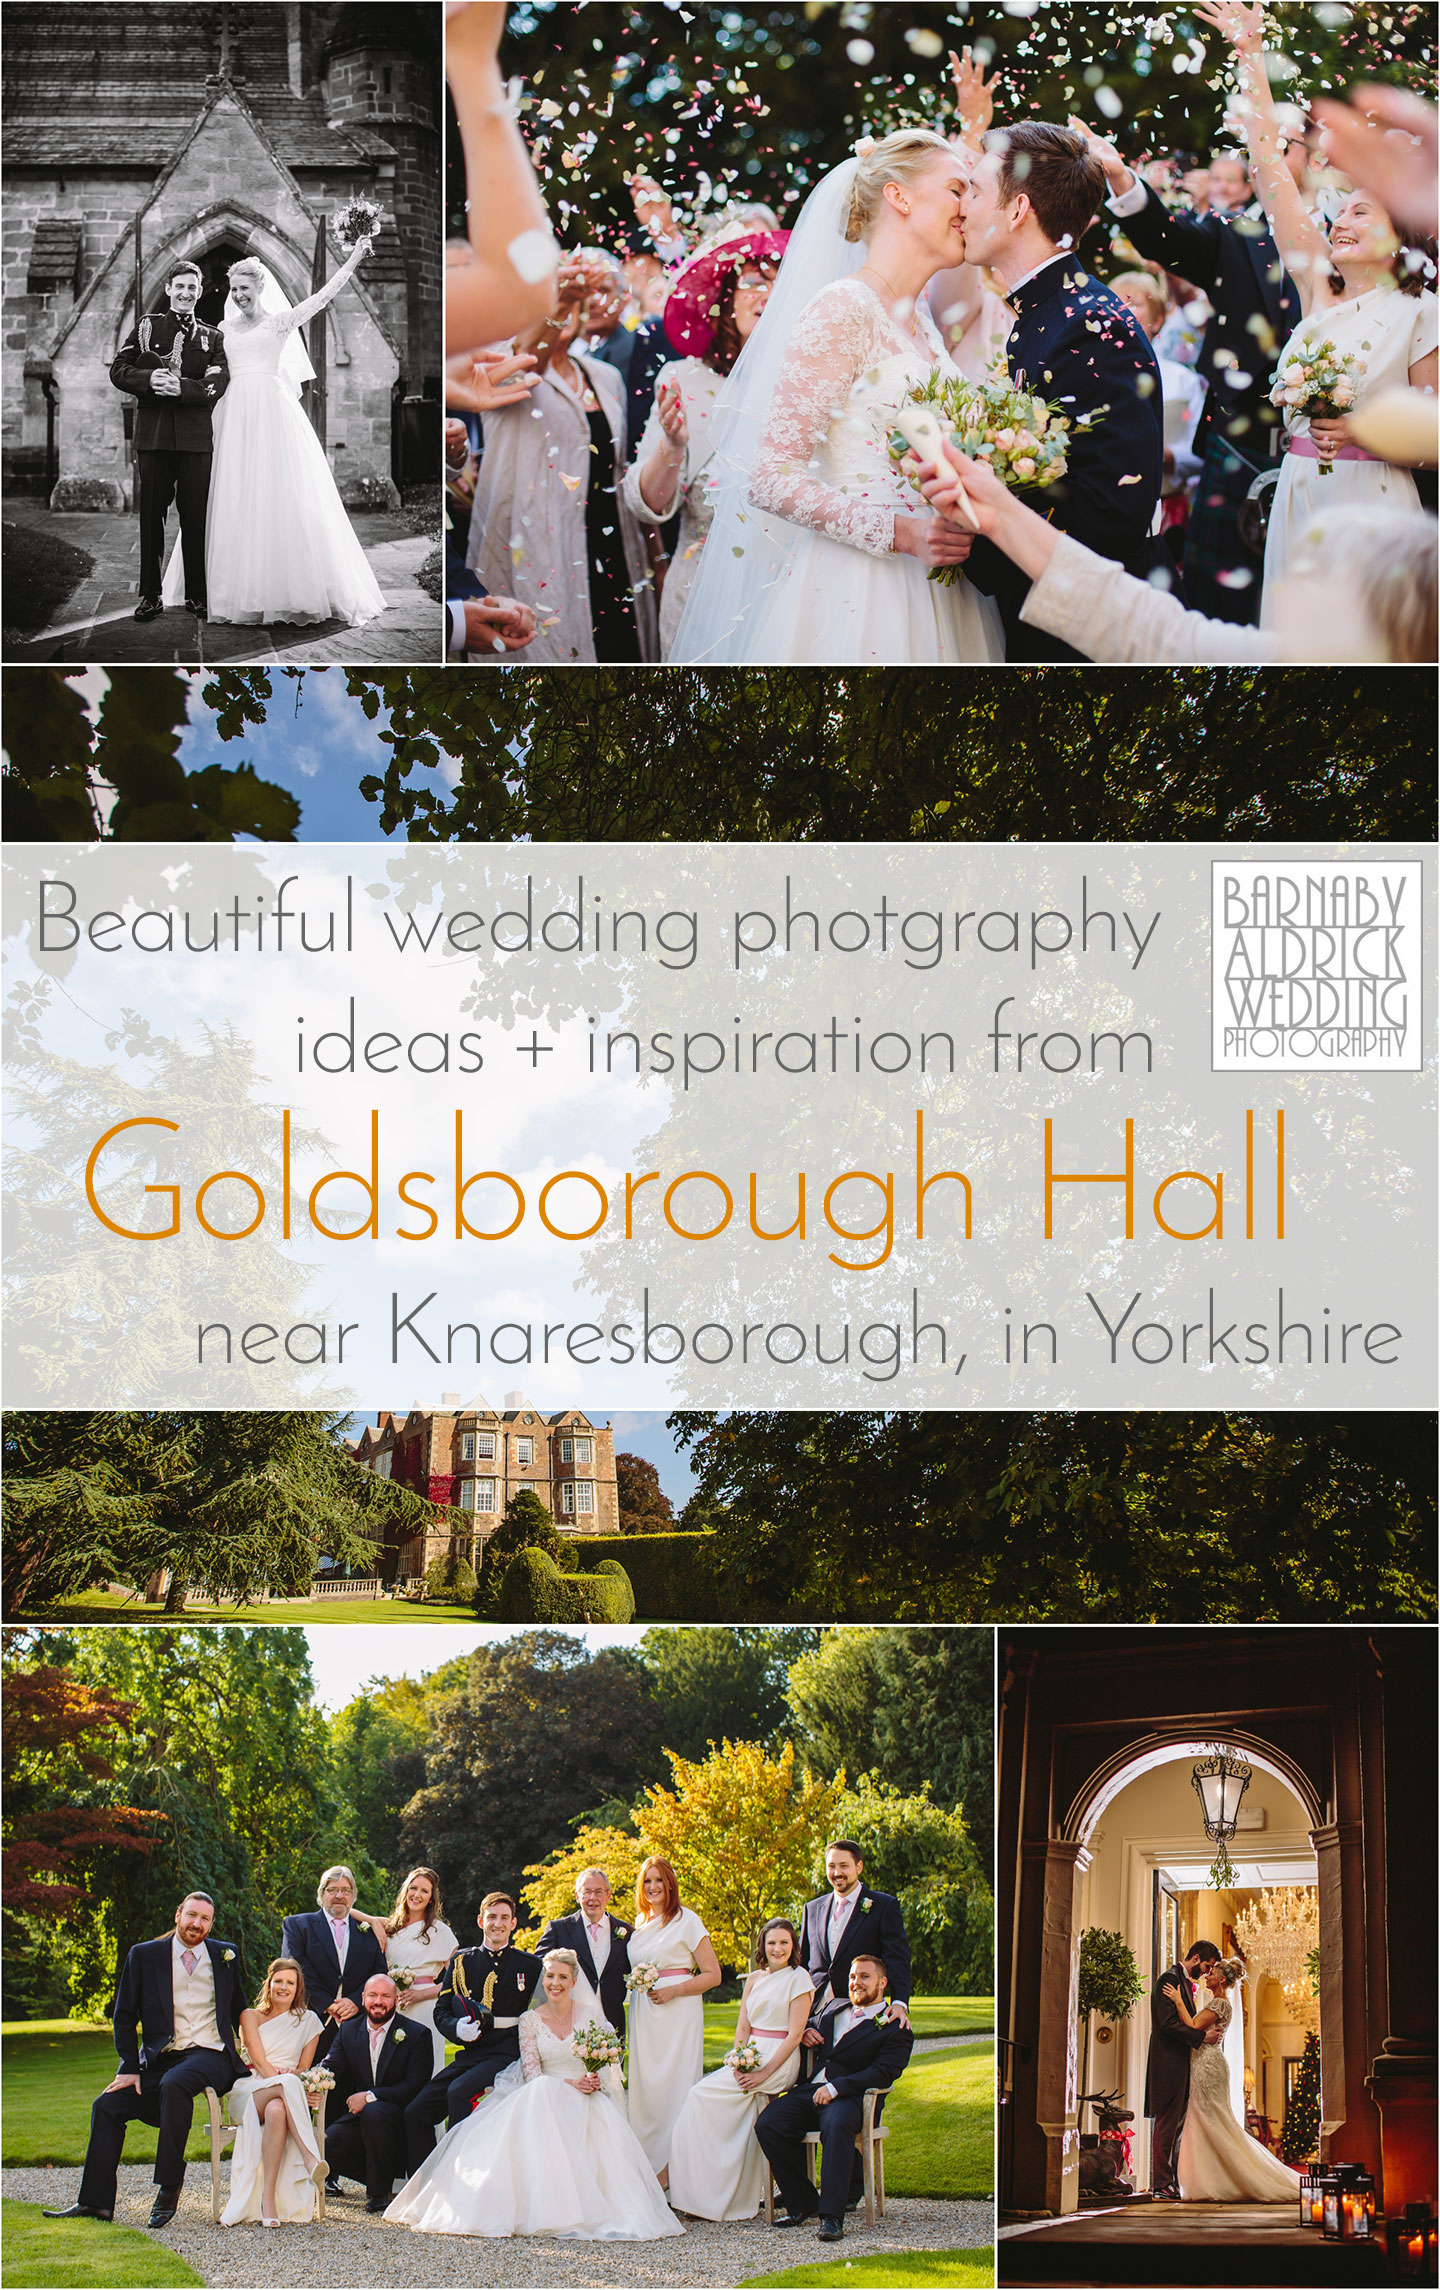 Wedding Photos ideas and inspiration from Goldsborough Hall Knaresborough by a Yorkshire photographer